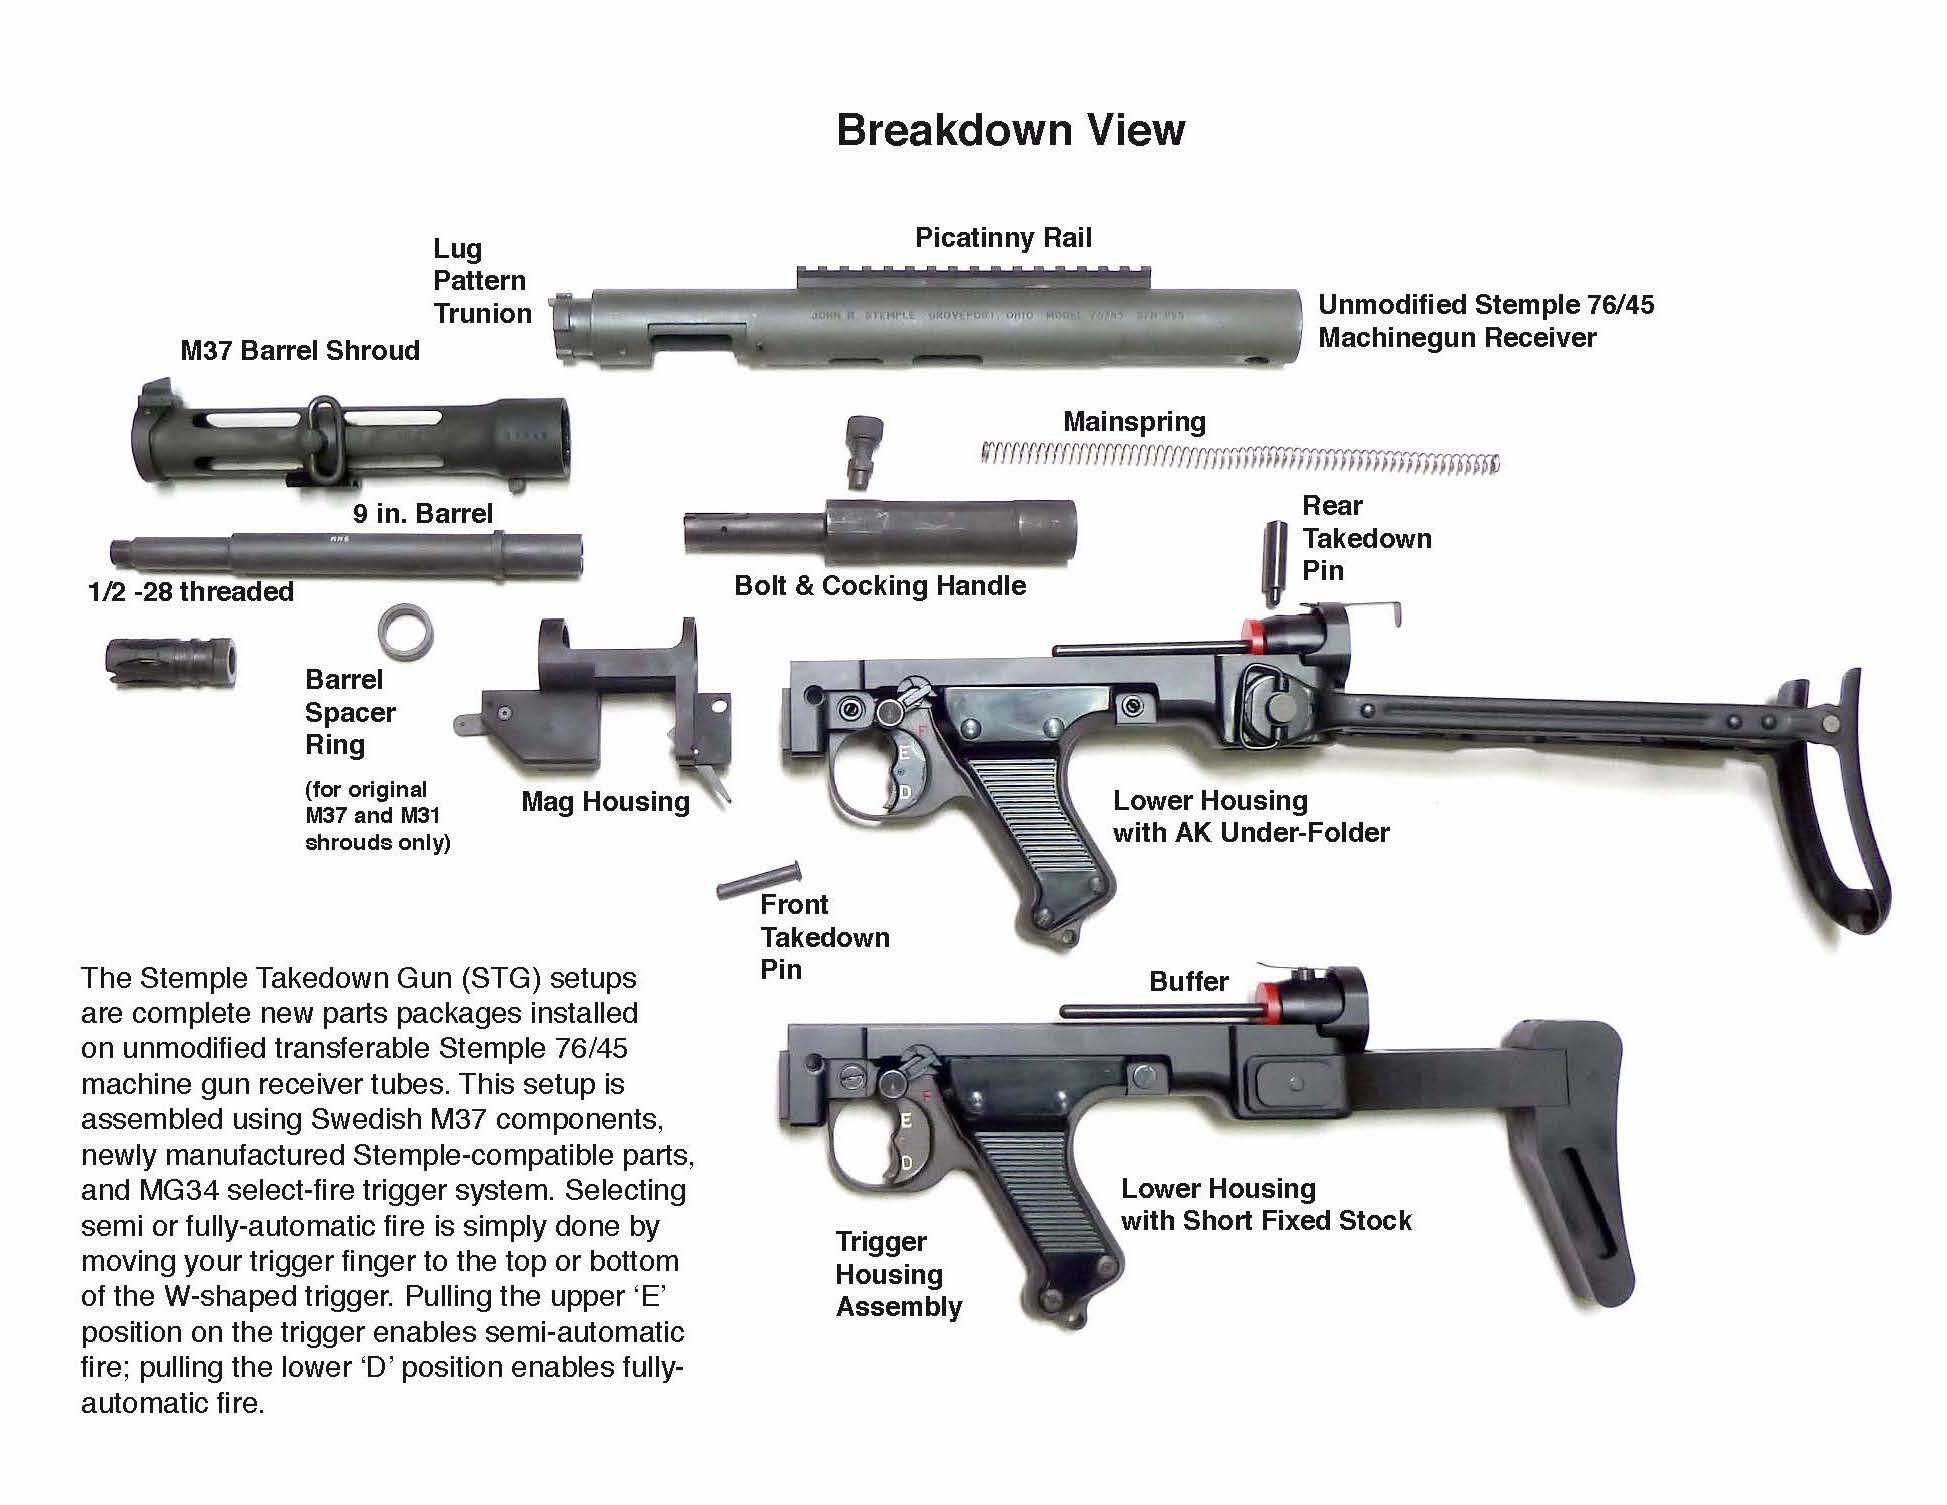 stg34kmanual-diagram-page-02.jpg